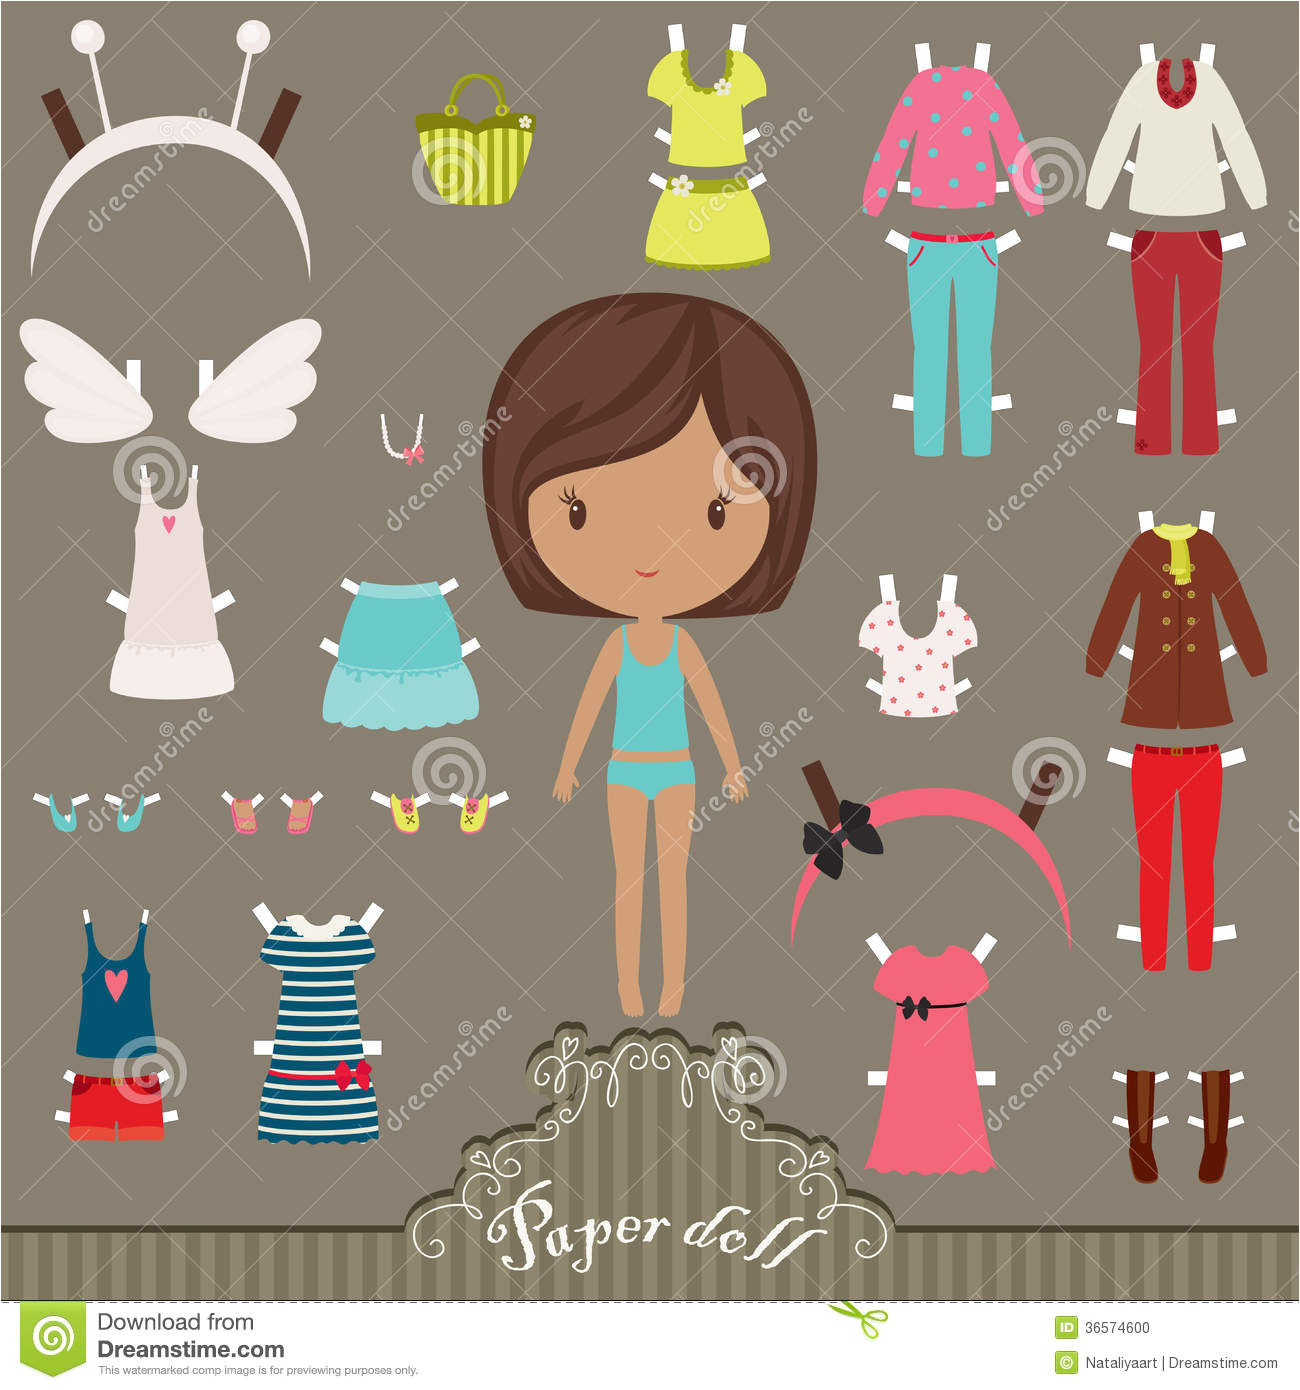 stock photo paper doll outfits dress up body template image36574600